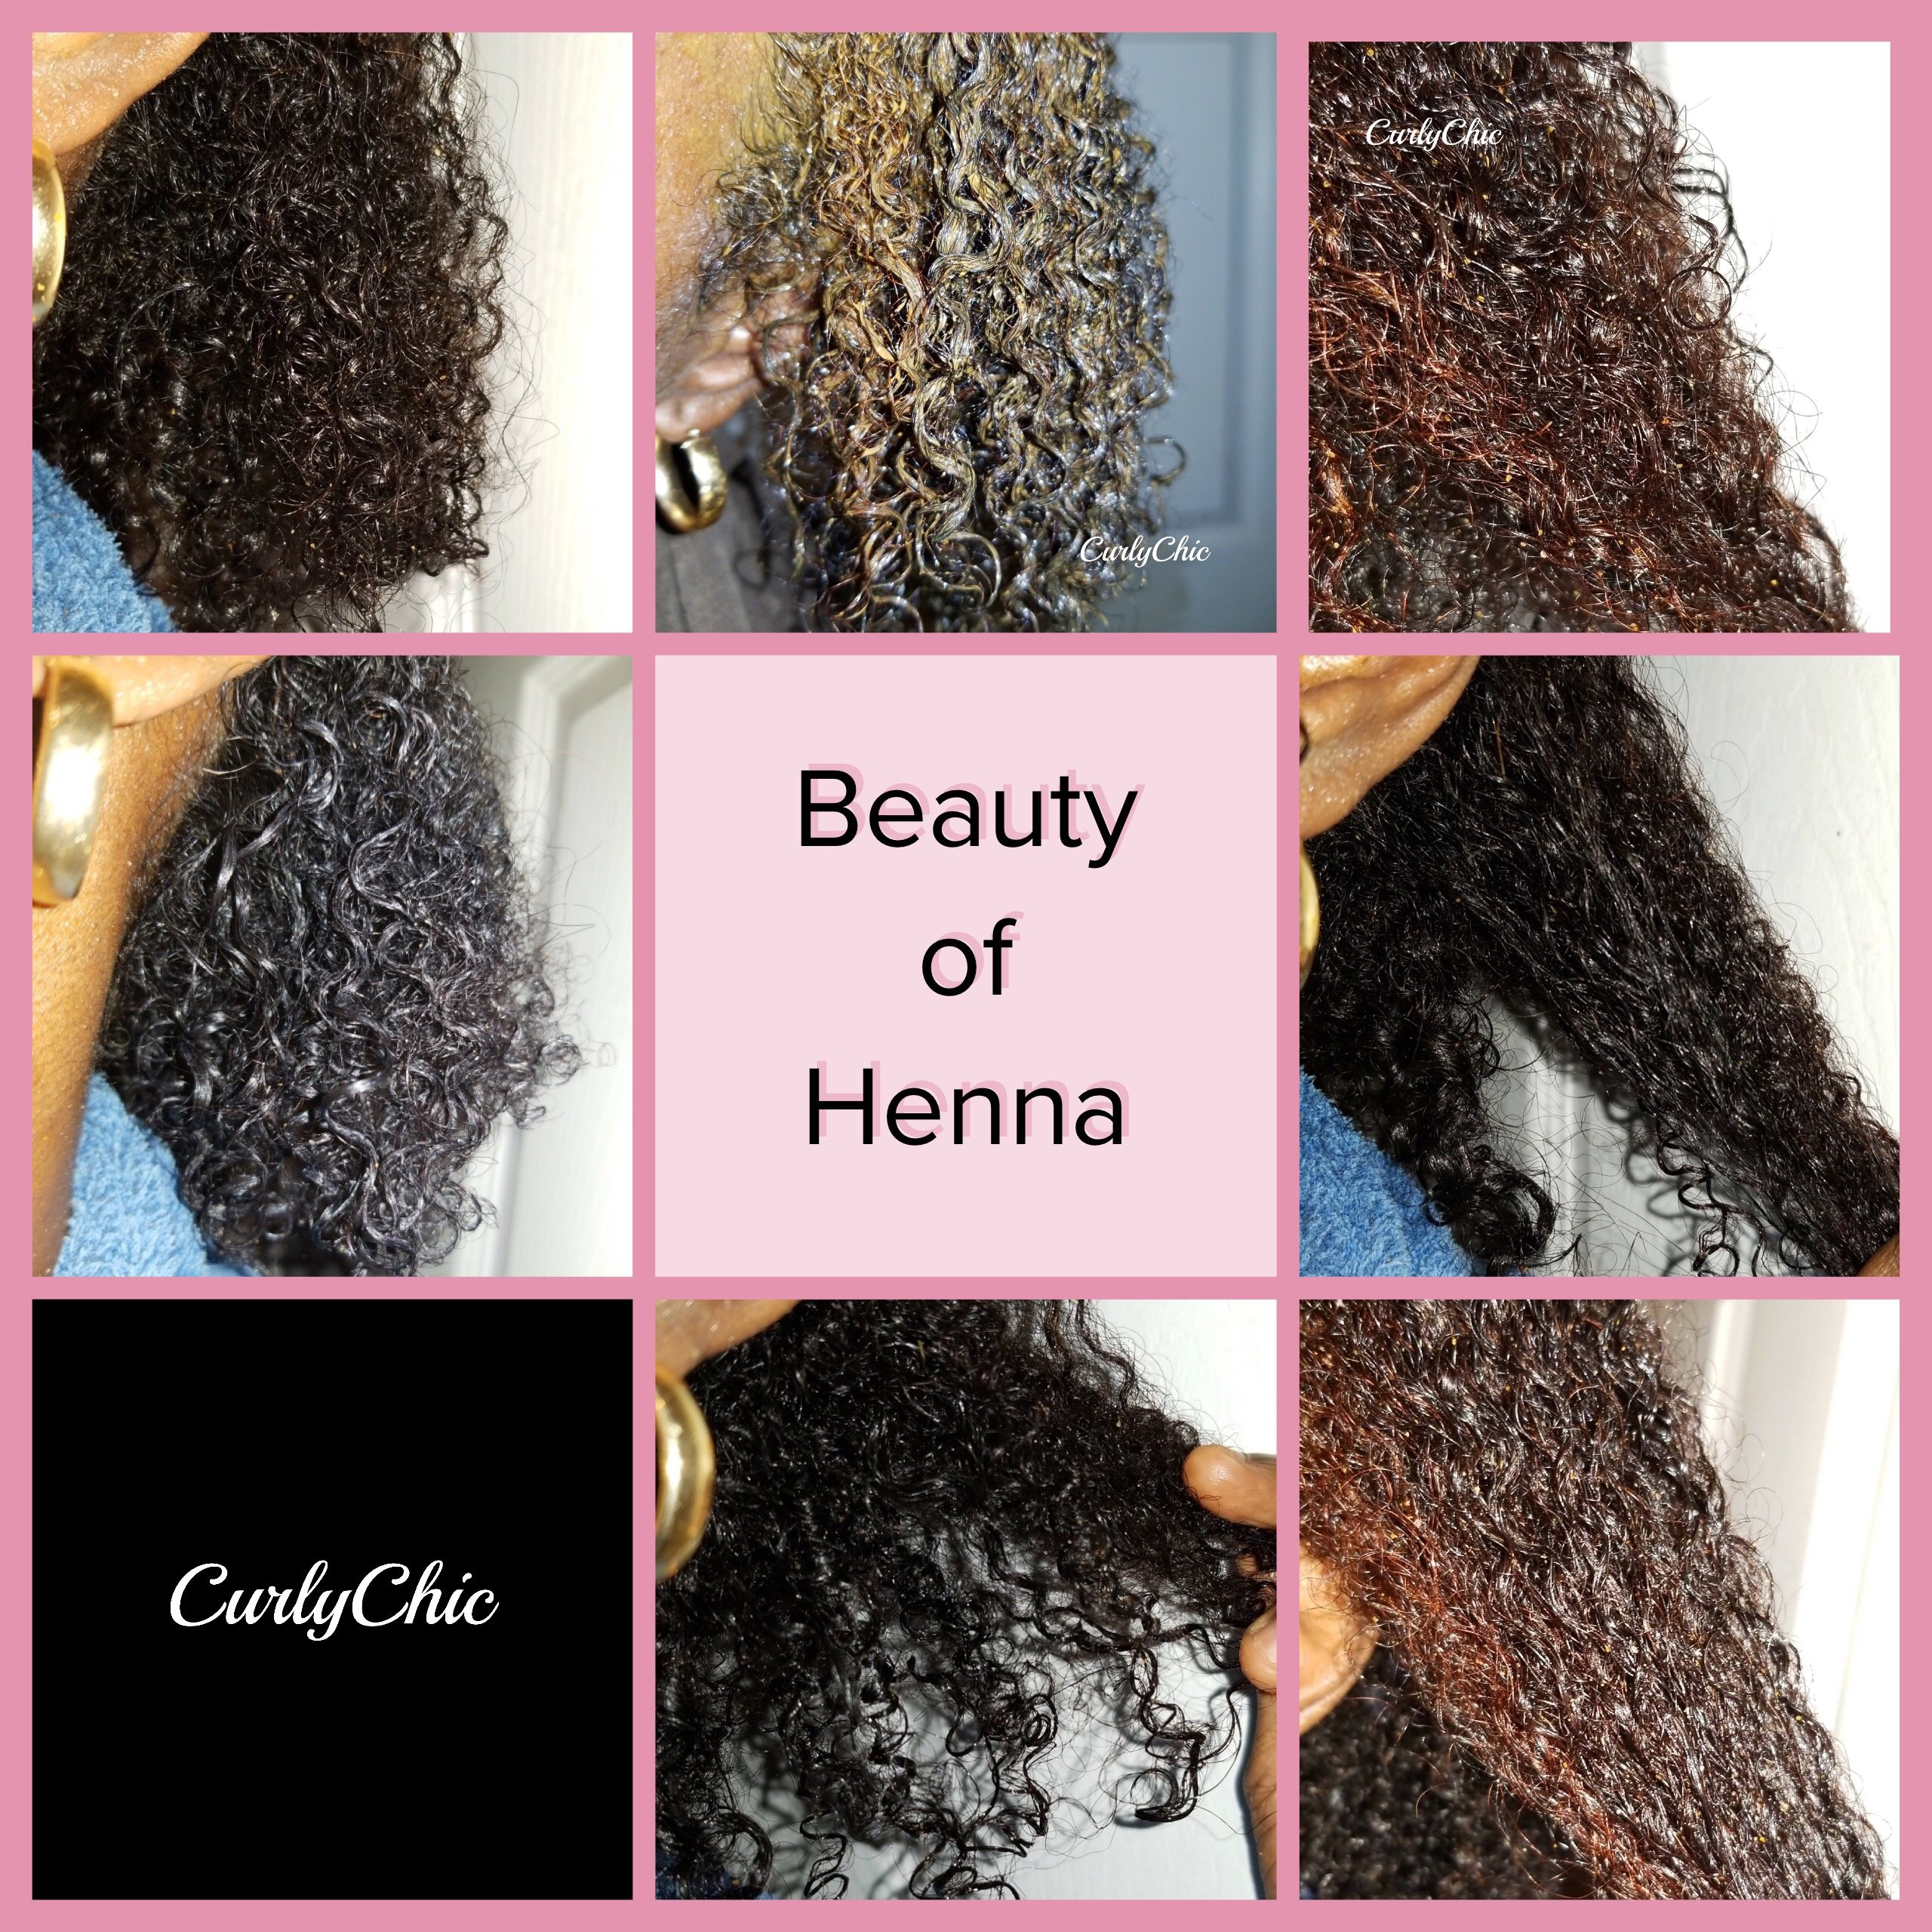 Henna Natural Curly Hair The Beauty Of Henna Curly Chic